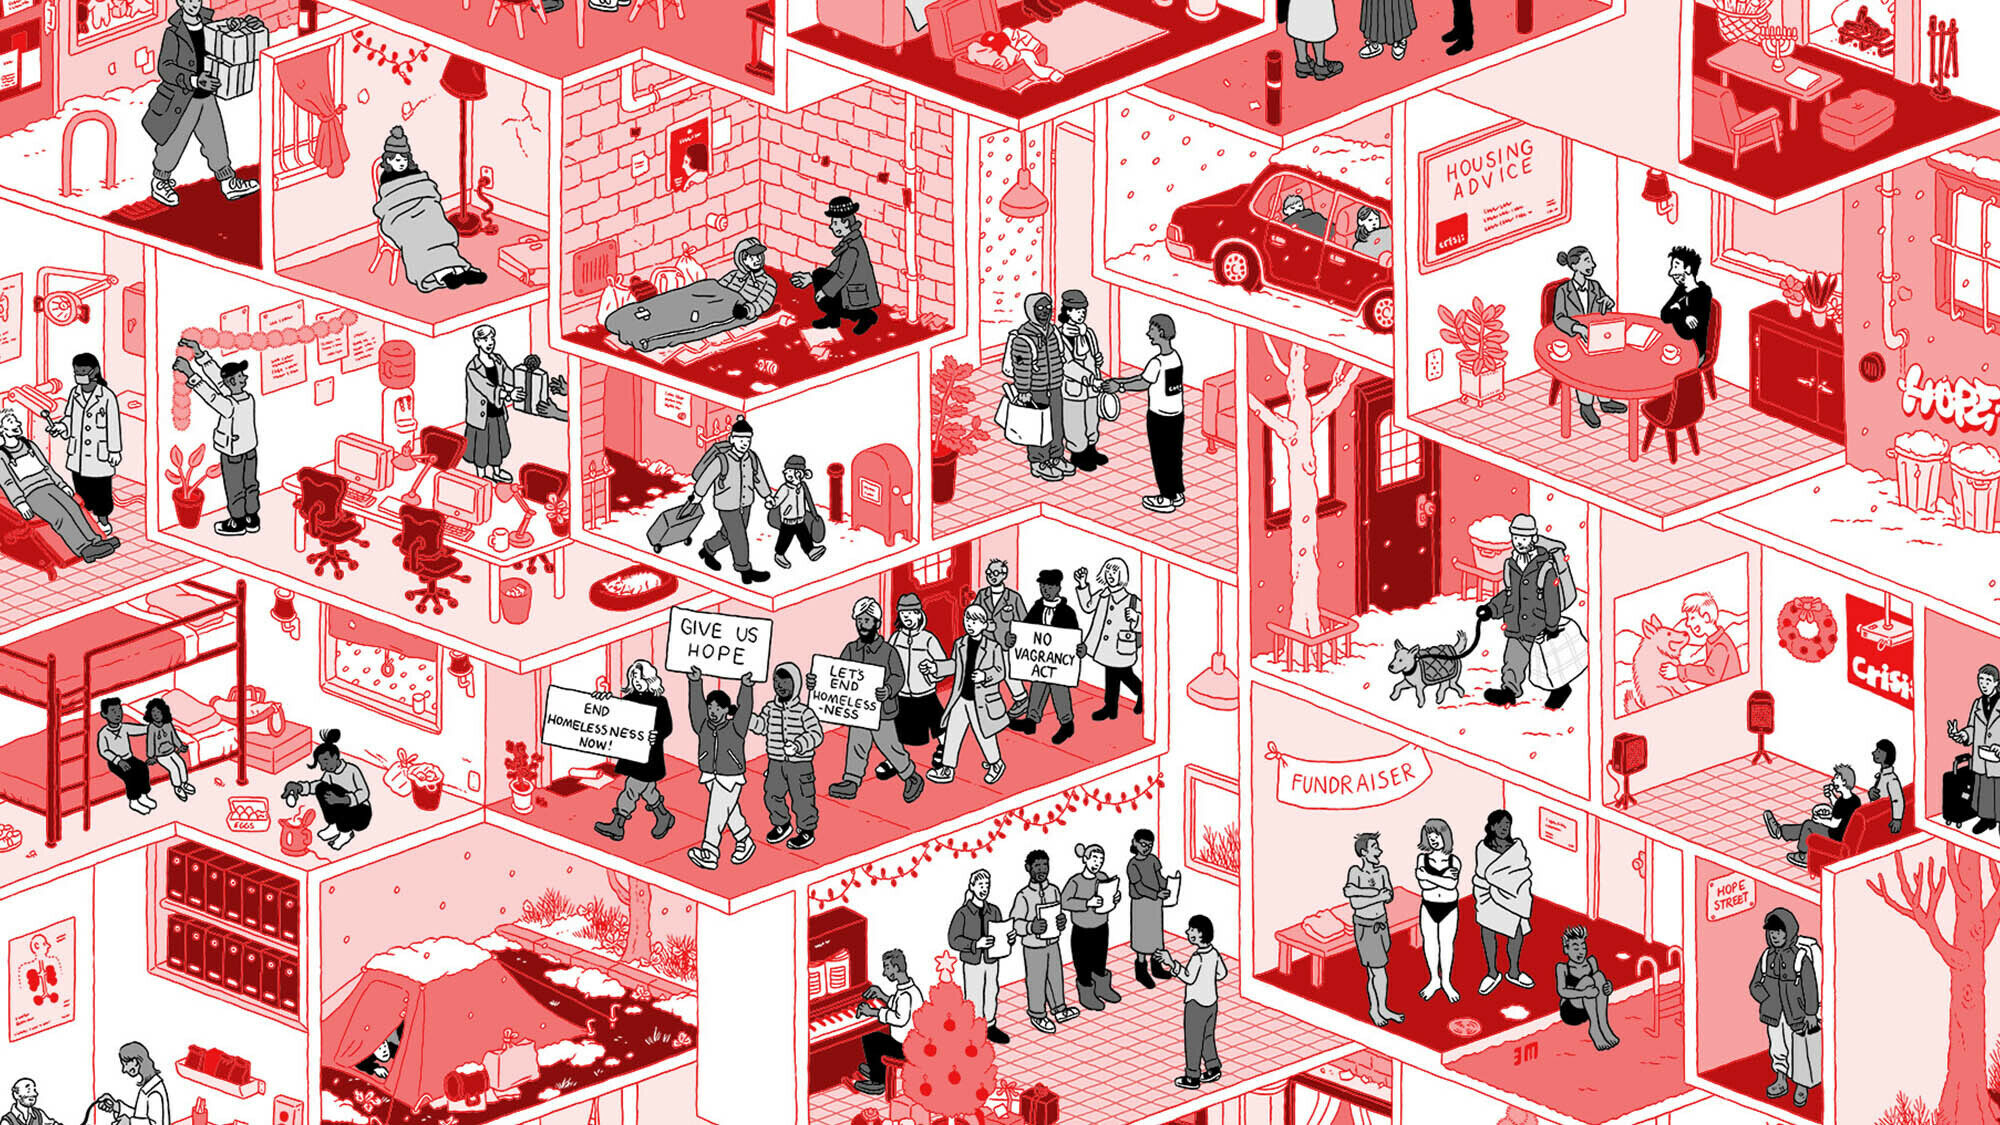 Layed illustration of various rooms from different households, representing different types of homelessness